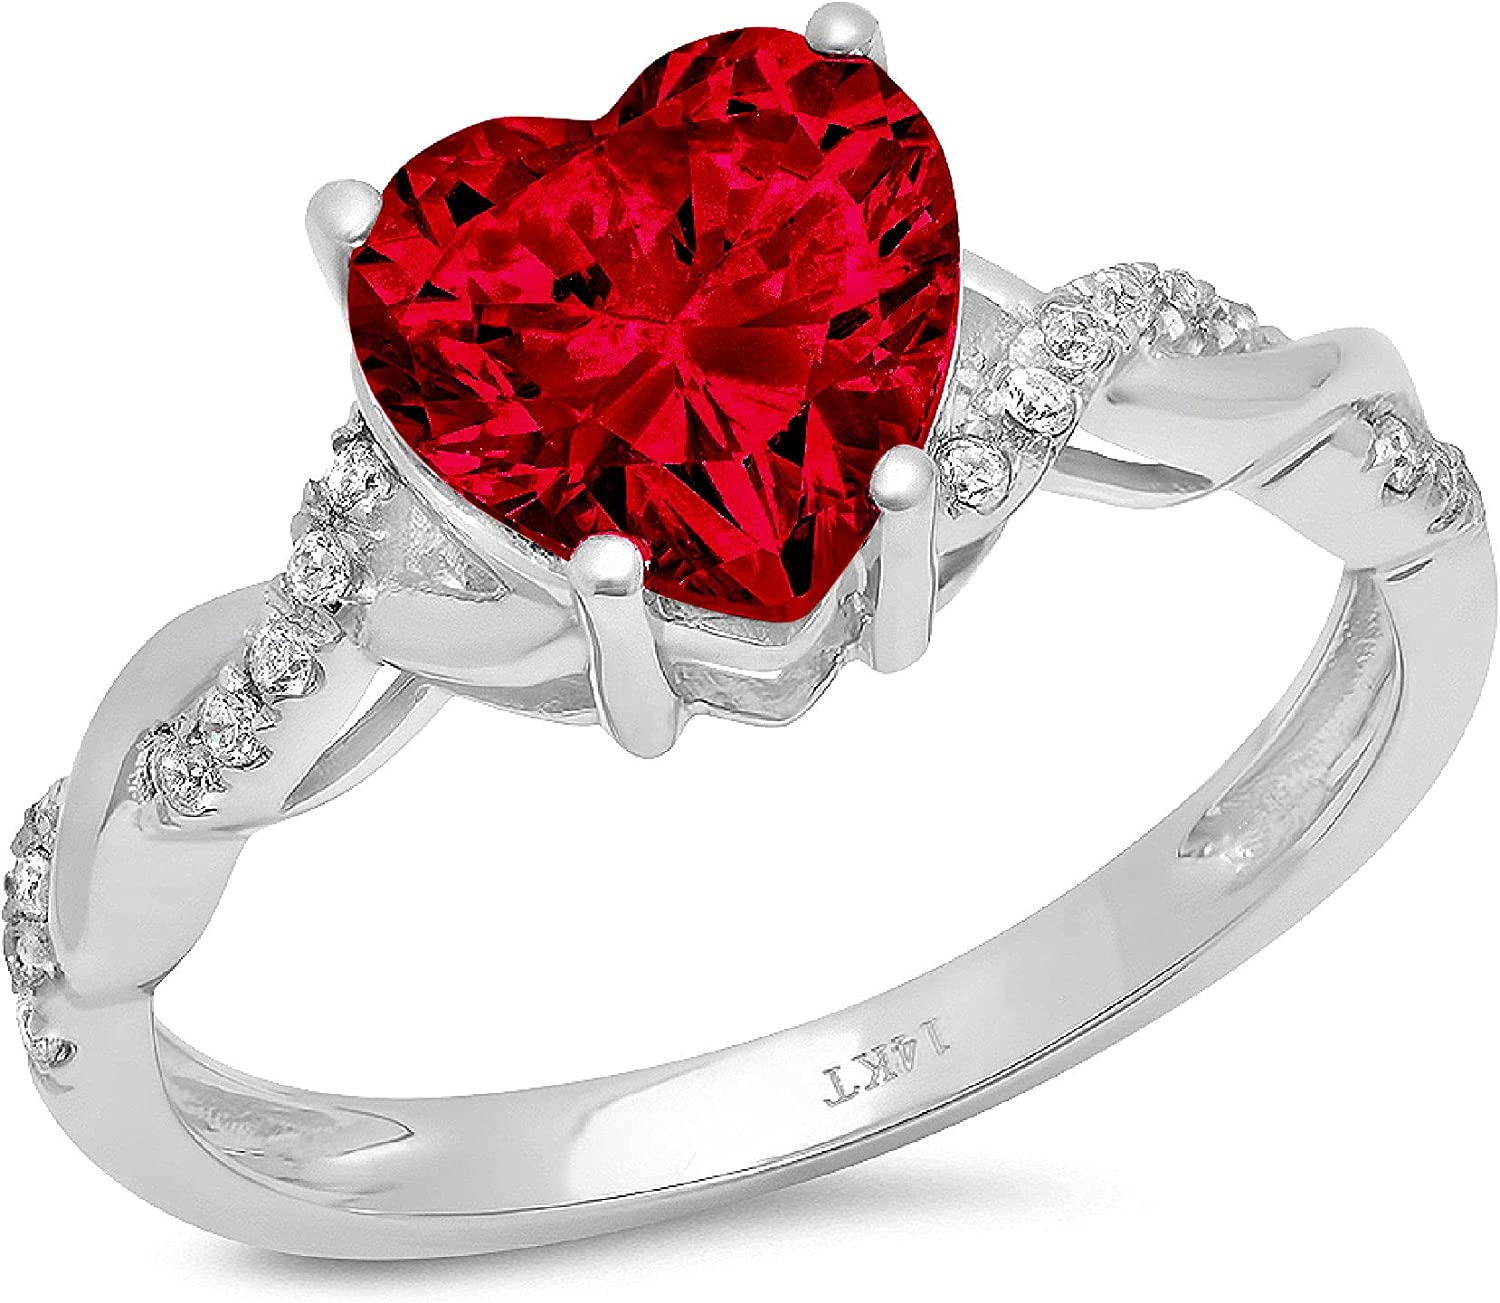 Max 76% OFF 2.13ct Heart Cut Criss Cross Milwaukee Mall Halo Natural Solitaire Twisted Crim